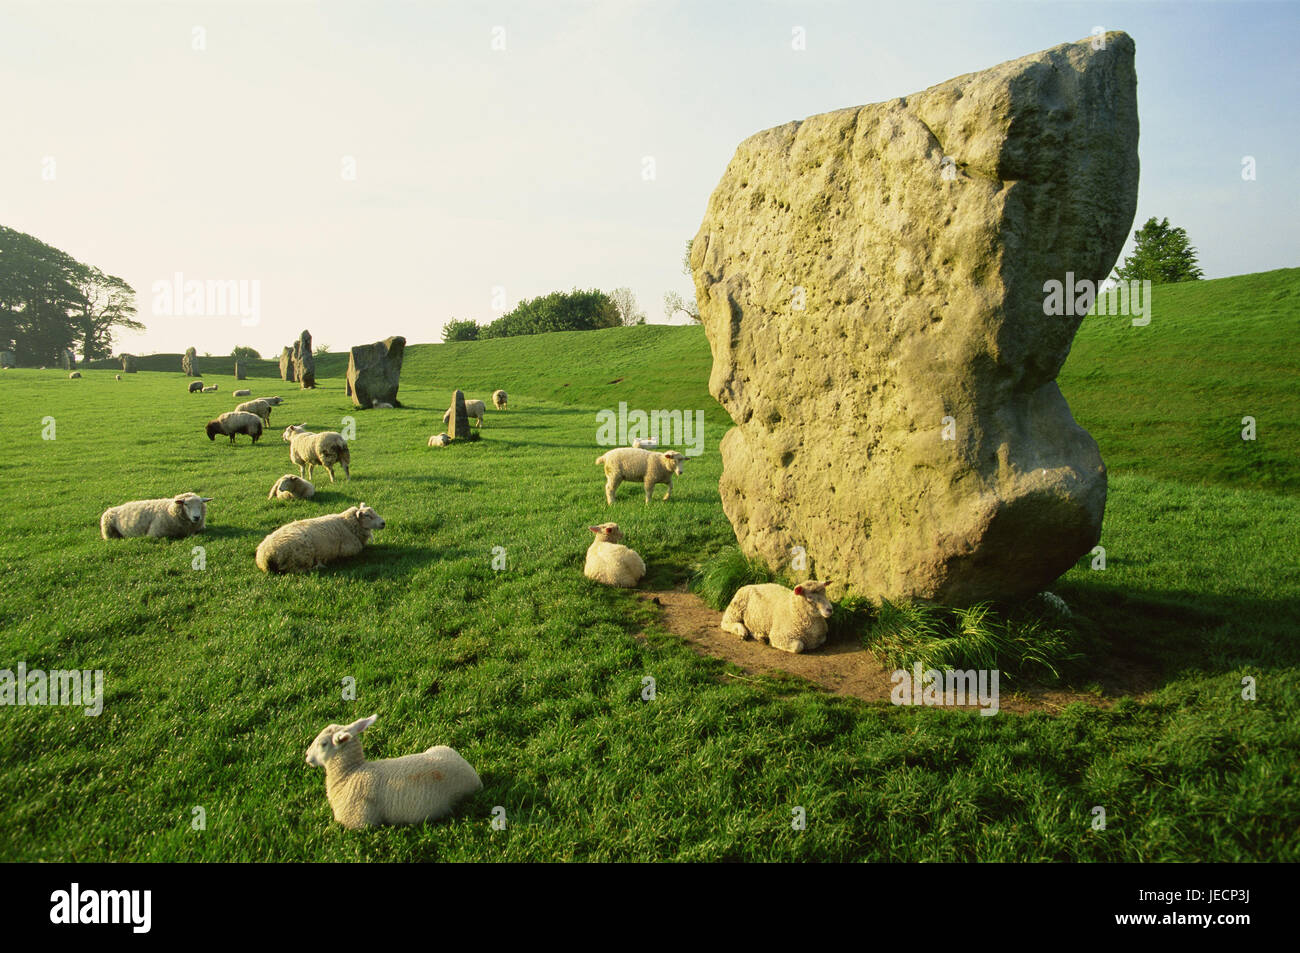 Great Britain, England, Wiltshire, Avebury, stone circle, sheep, Europe, south narrow country, place of interest, - Stock Image